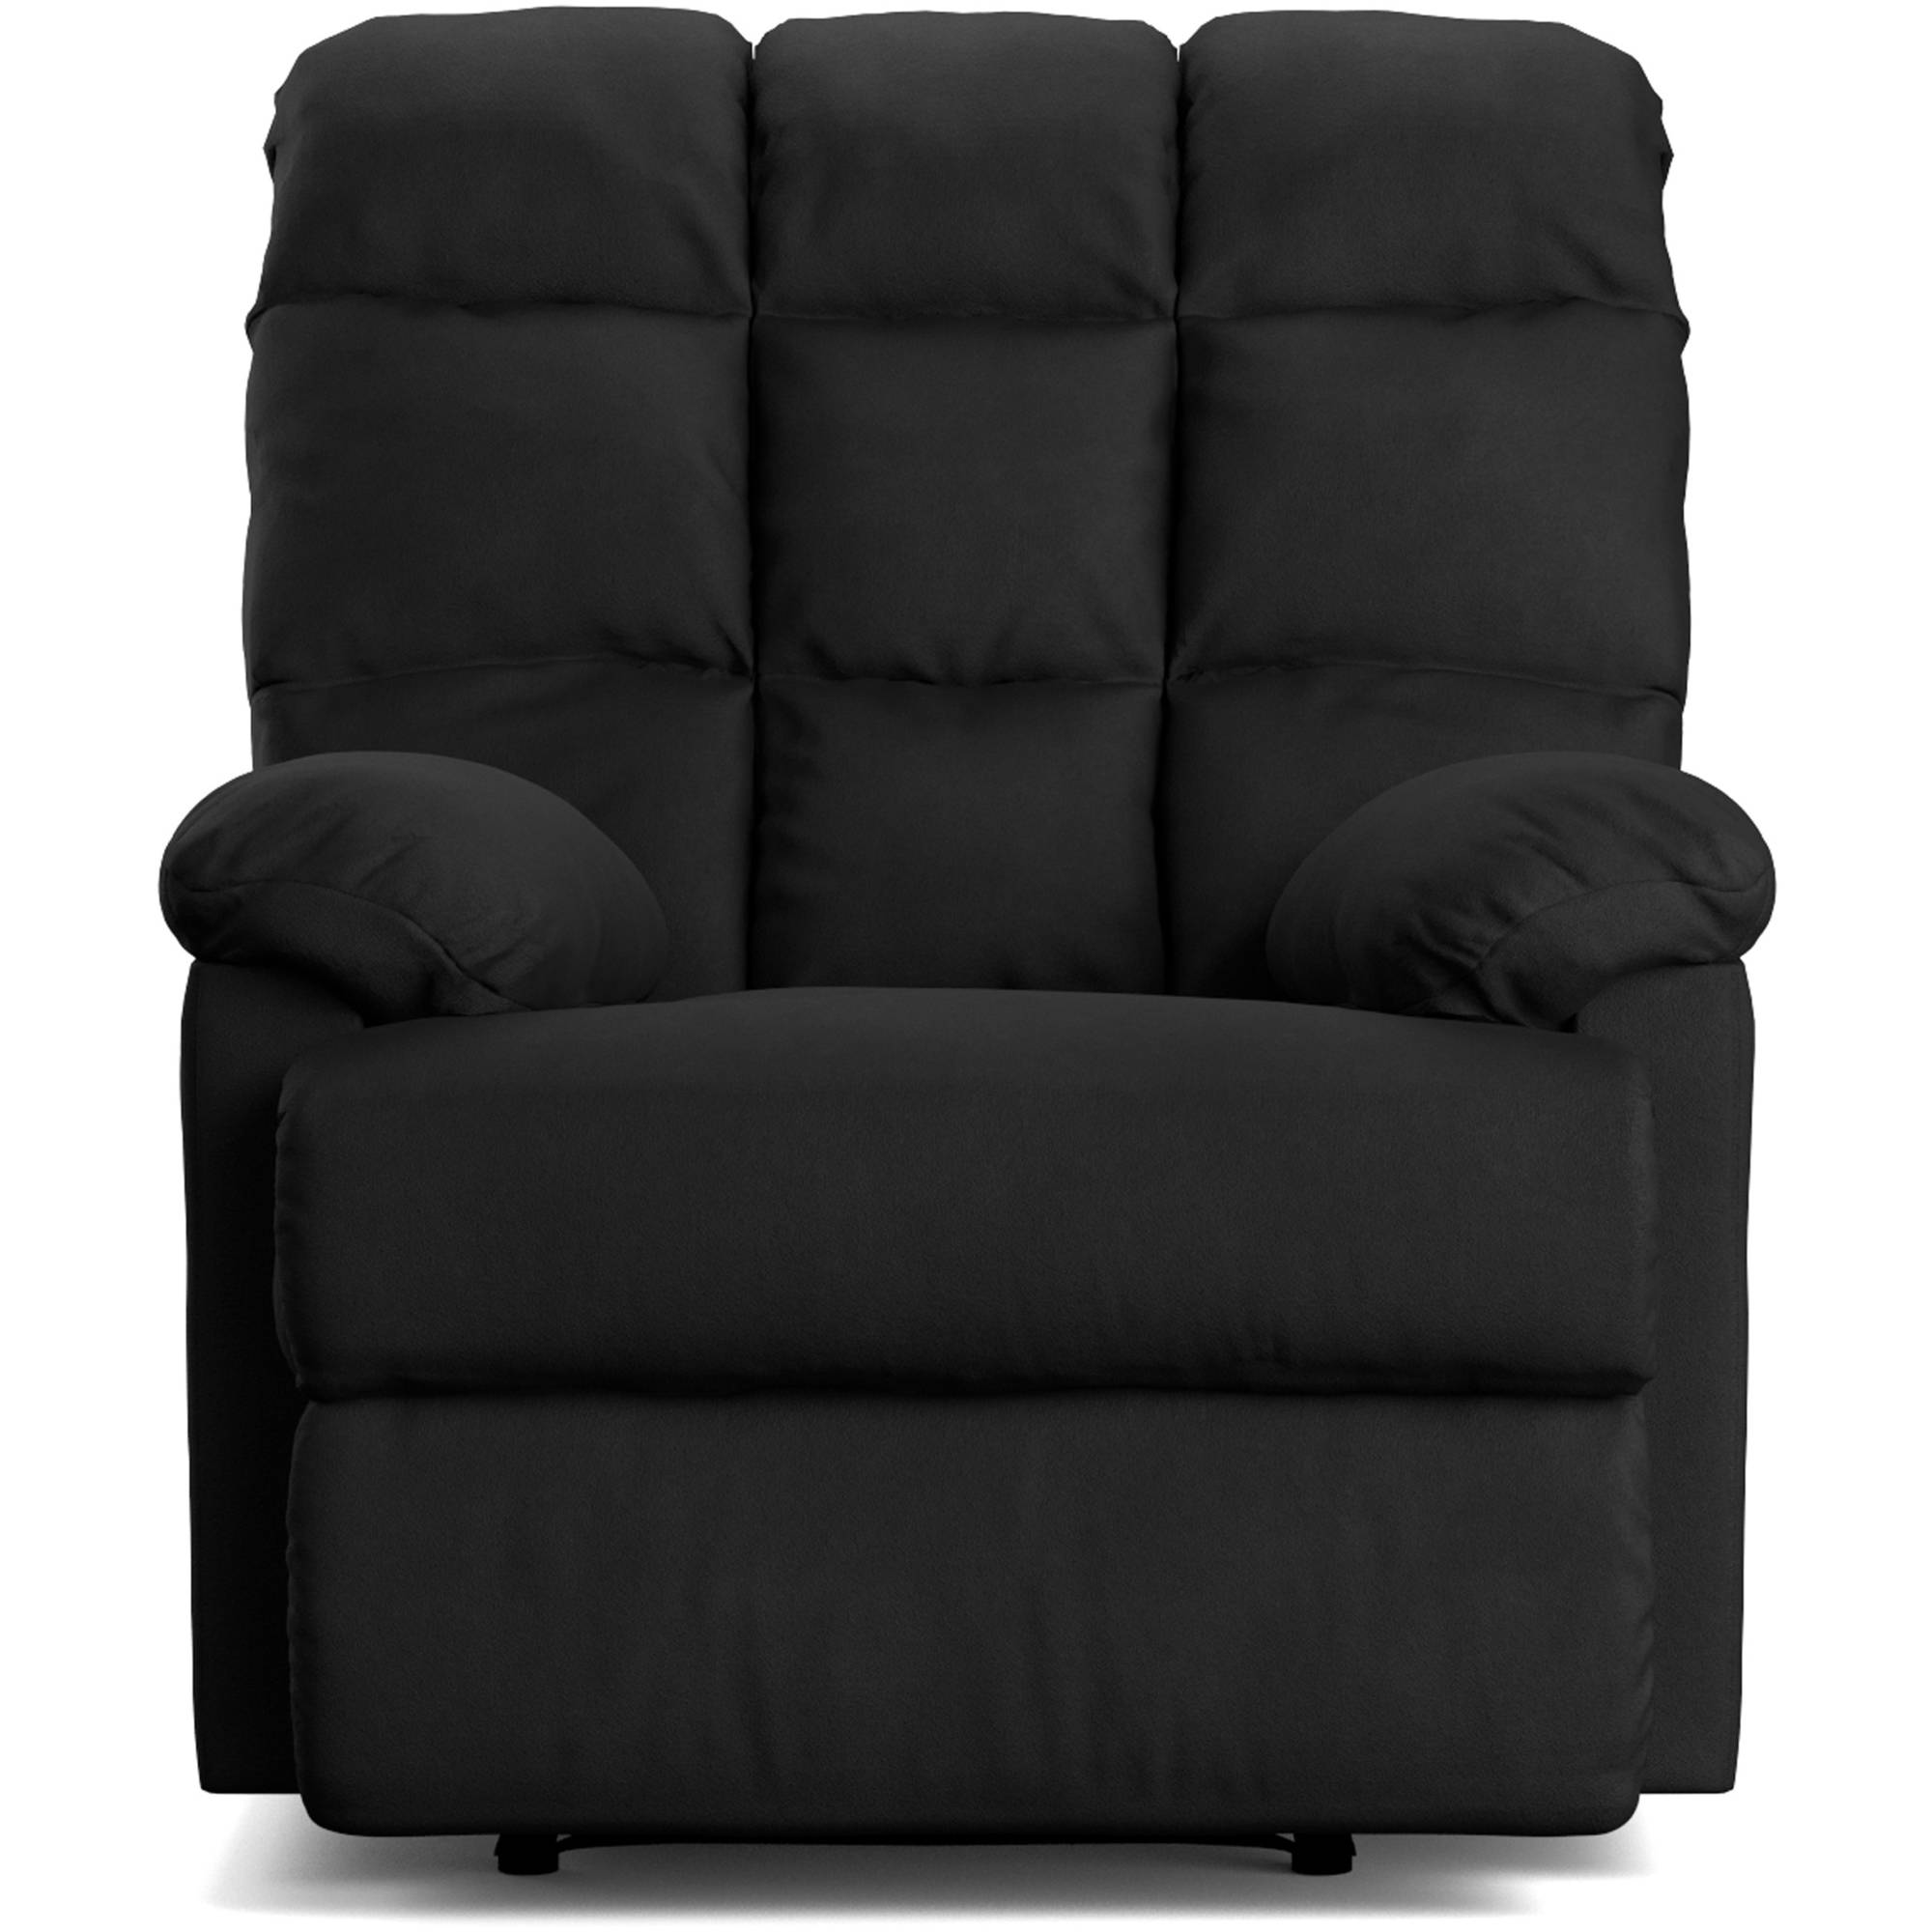 Baja Convert A Couch Sofa Bed With Recliner Set Multiple Colors